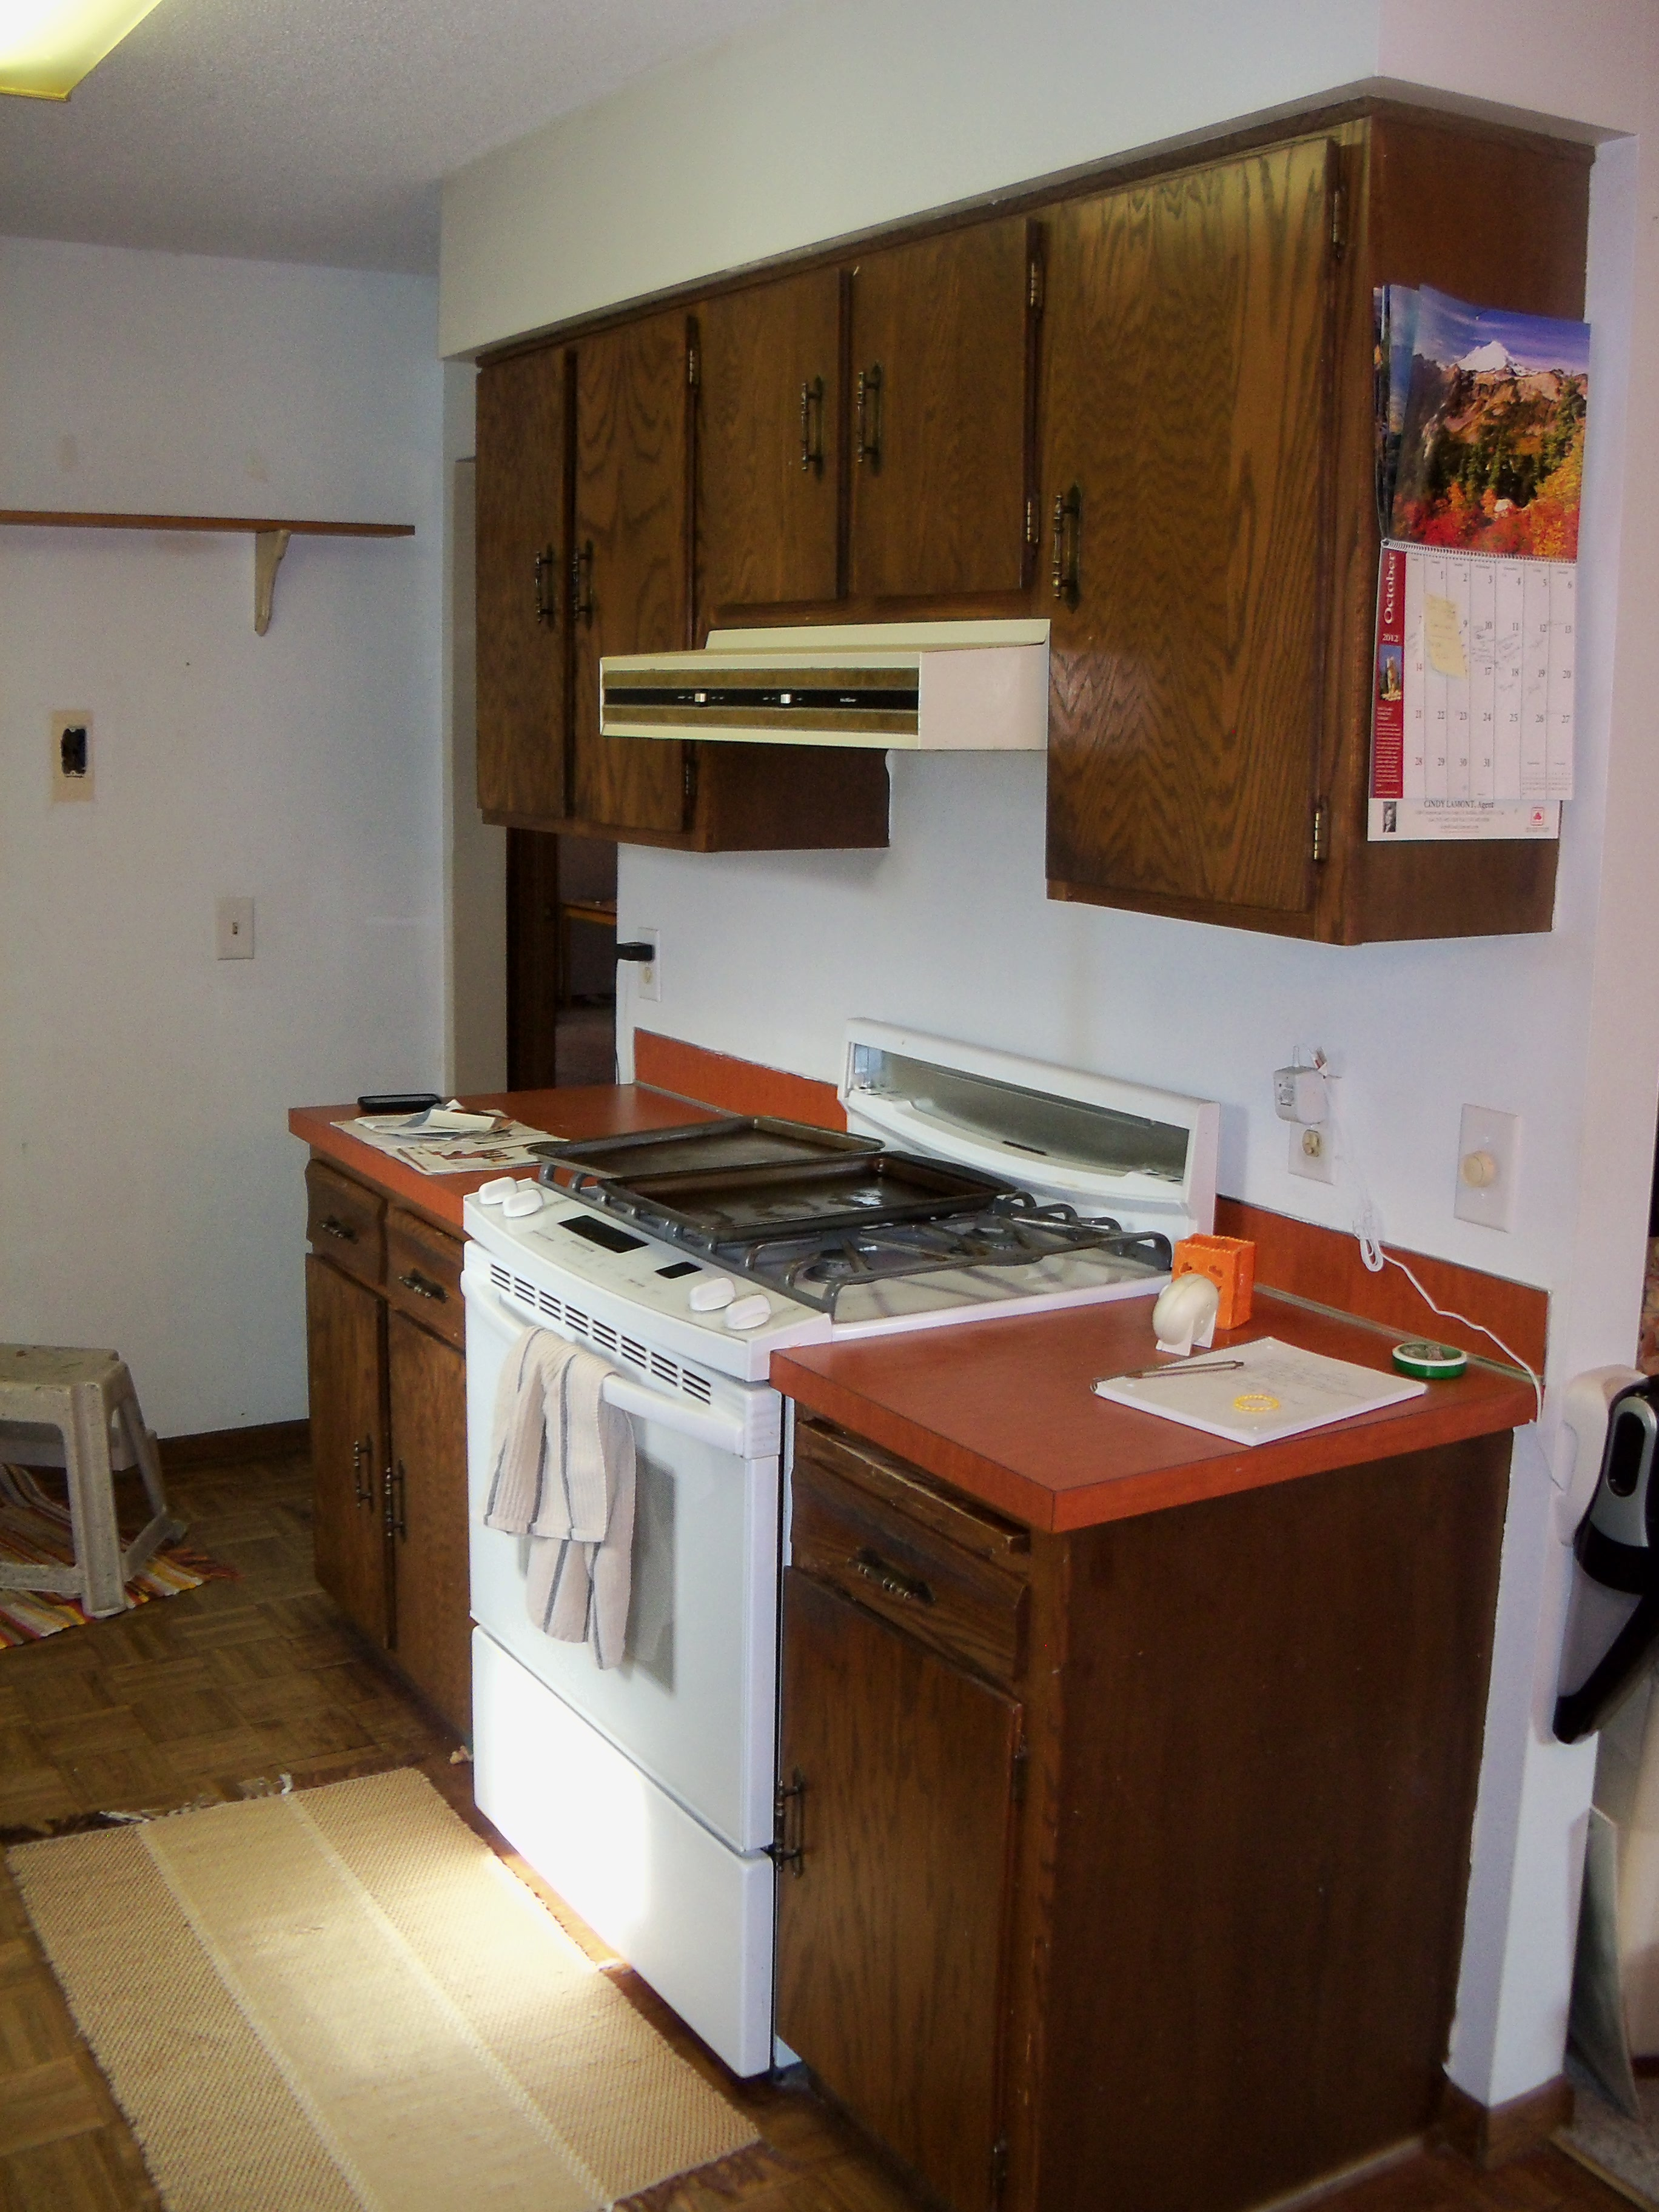 Kitchen Upgrade by just repainting cabinets Country Style Accents